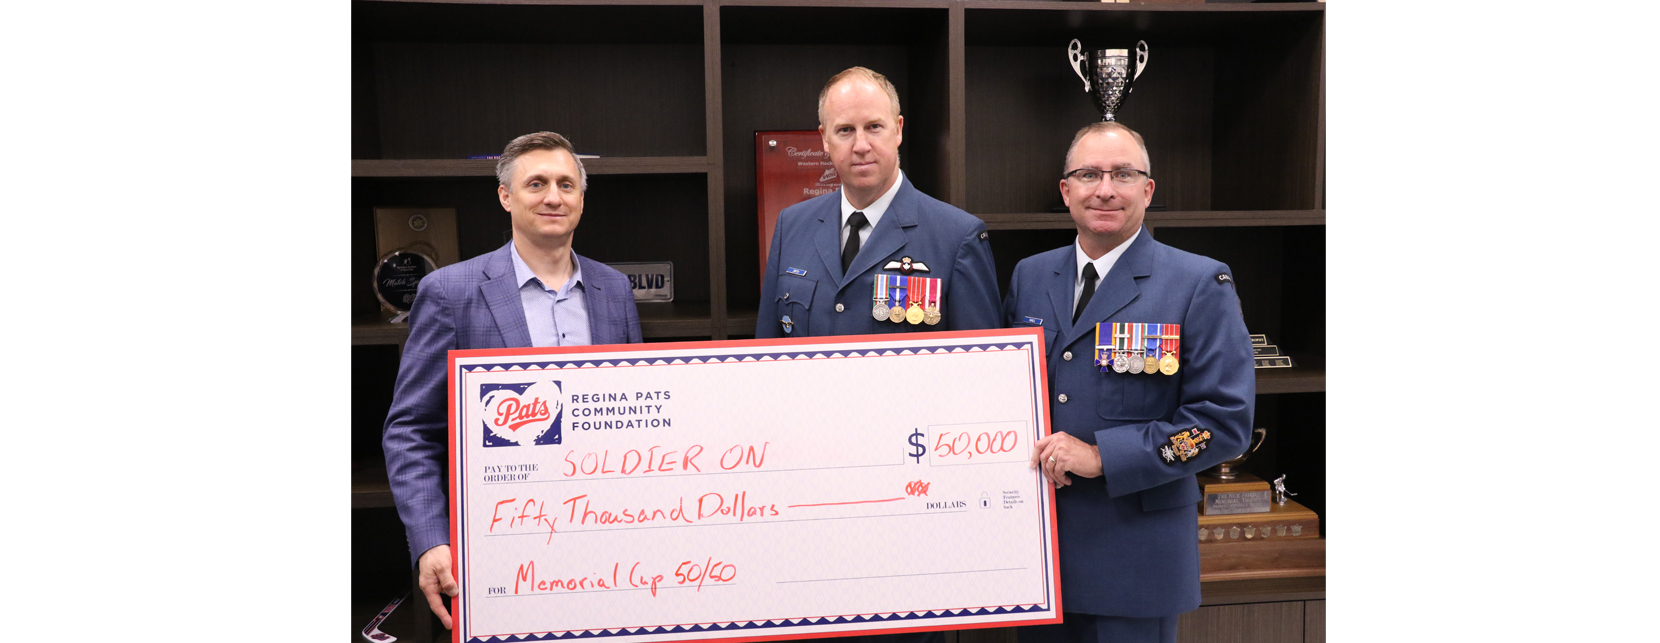 Soldier On program receives $50,000 from The Regina Pats Community Foundation  Image